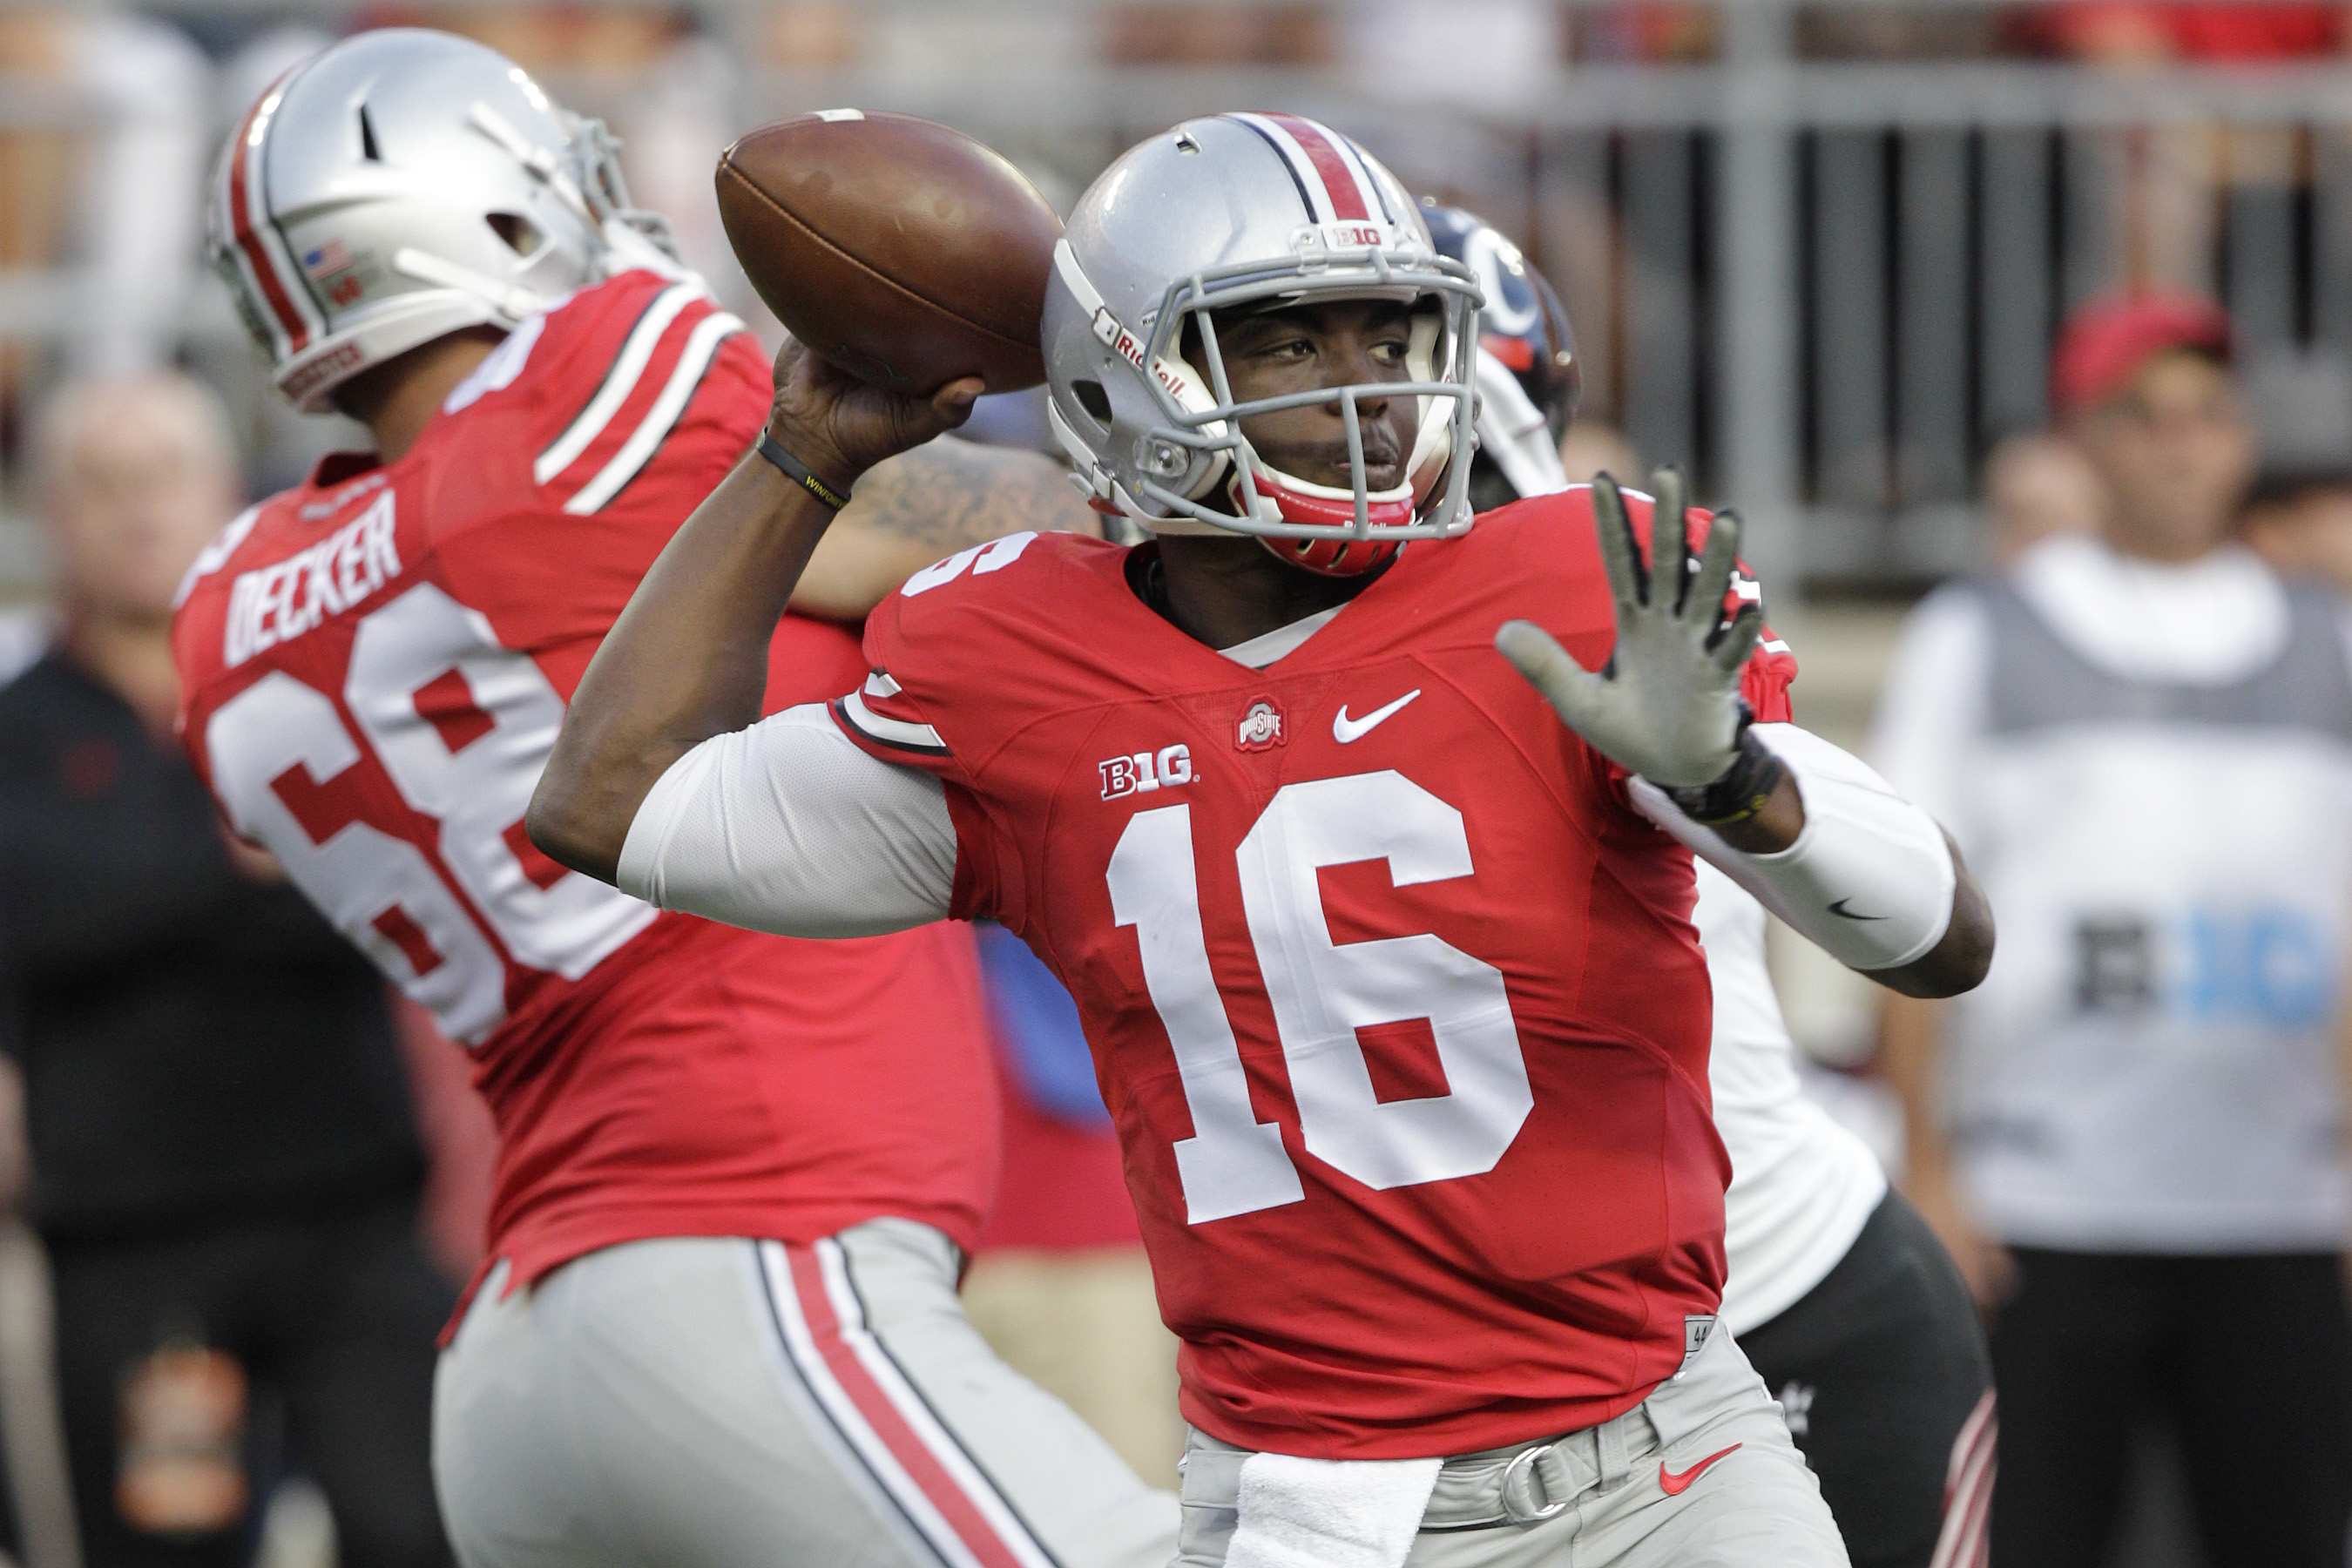 FILE - In this Sept. 27, 2014, file photo, Ohio State quarterback J.T. Barrett plays against Cincinnati during an NCAA college football game in Columbus, Ohio. Many were surprised when redshirt freshman Barrett was ordained in the preseason as the backup